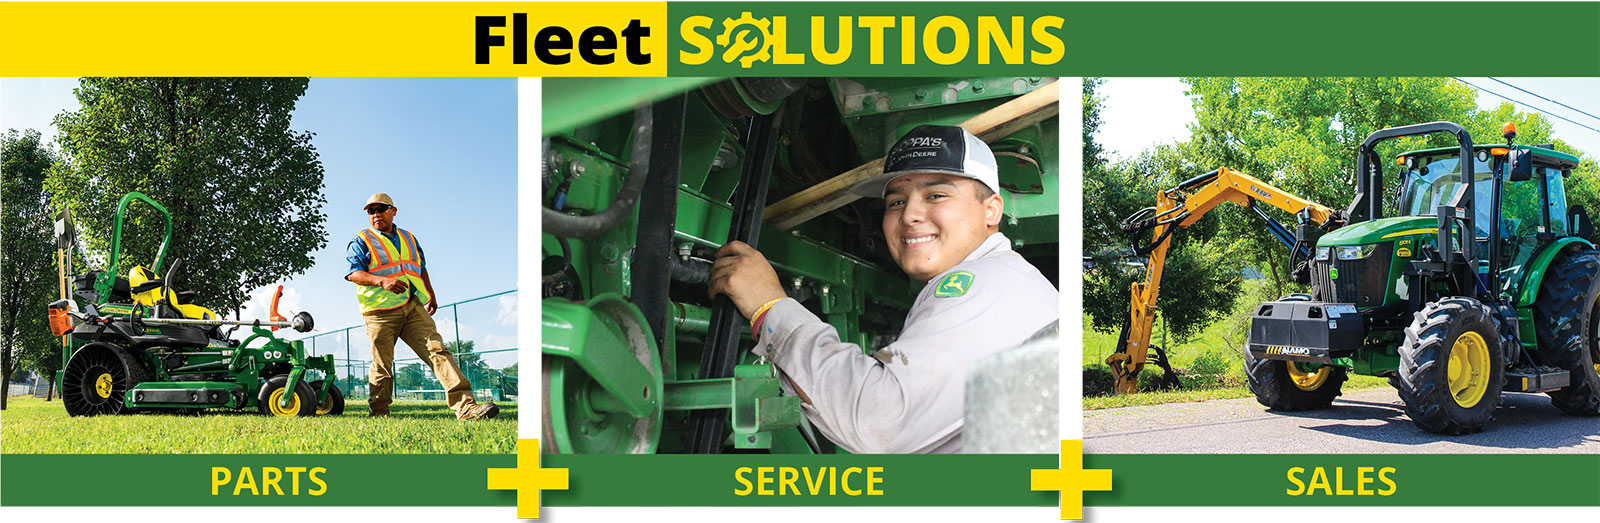 parts service and sales graphic